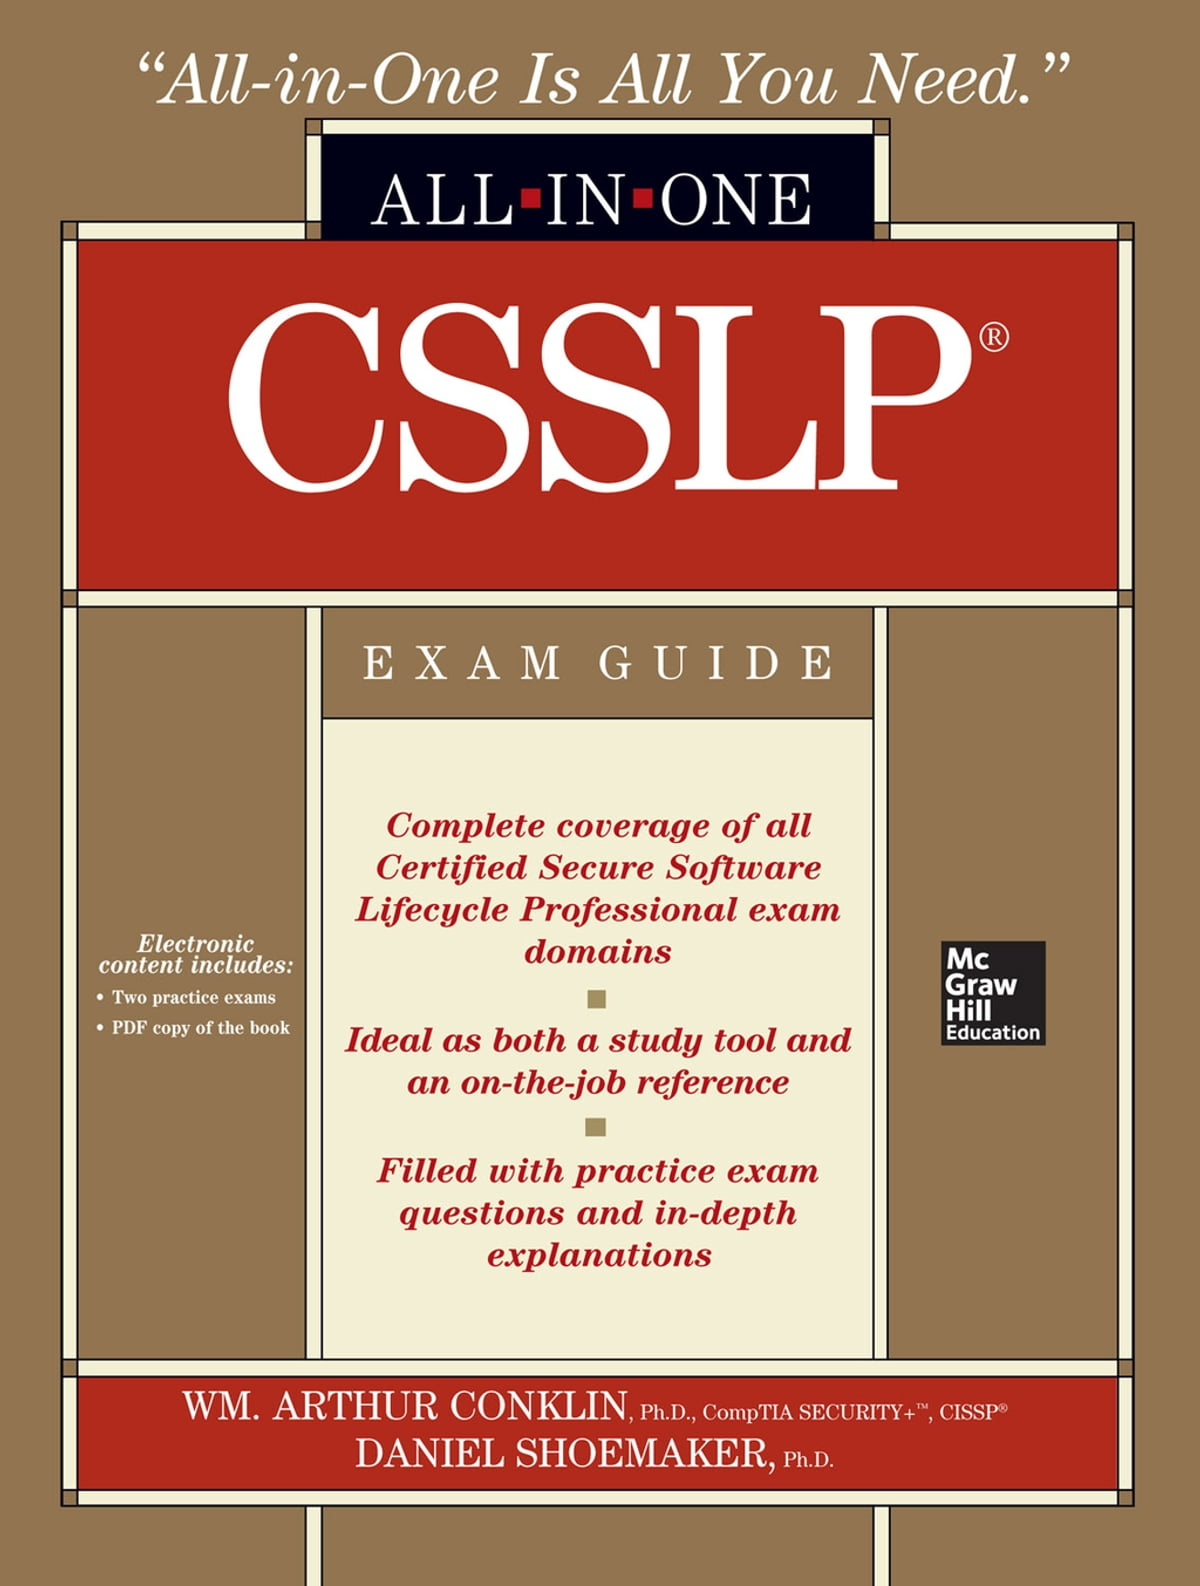 Csslp certification all in one exam guide ebook by wm arthur csslp certification all in one exam guide ebook by wm arthur conklin 9780071760256 rakuten kobo 1betcityfo Gallery